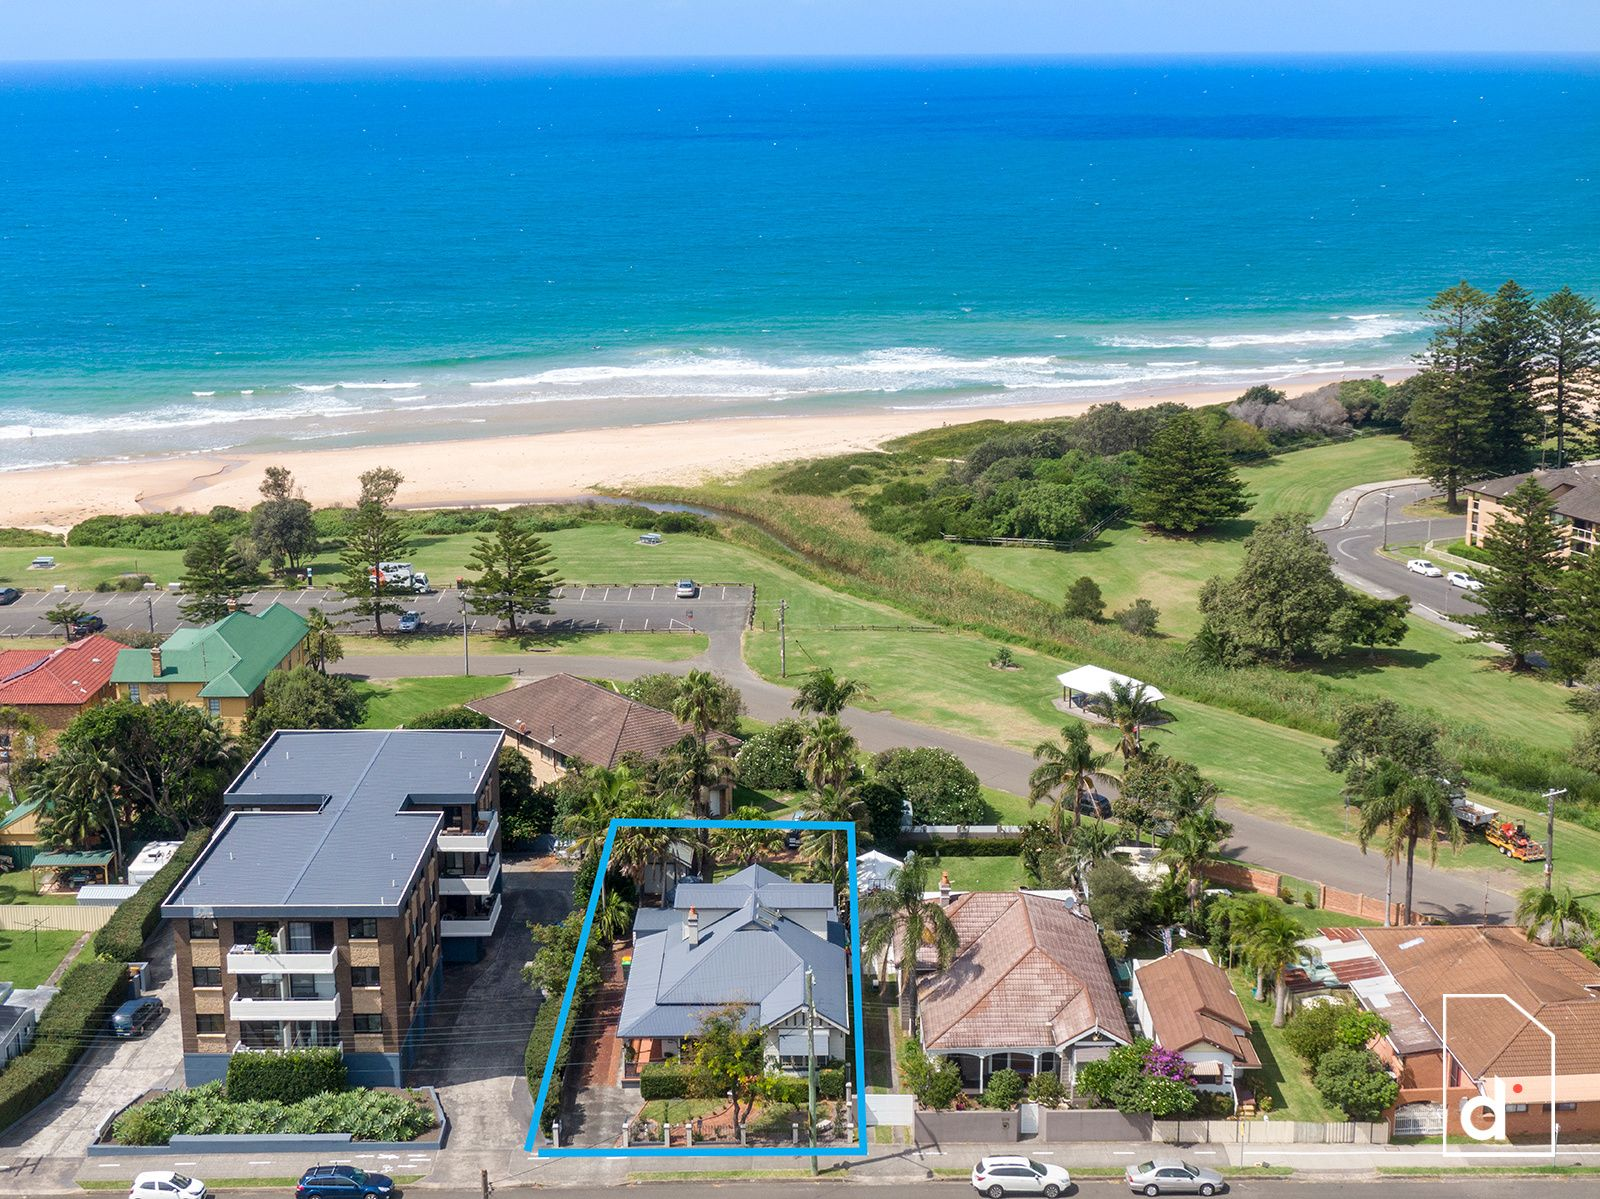 227 Lawrence Hargrave Drive, Thirroul NSW 2515